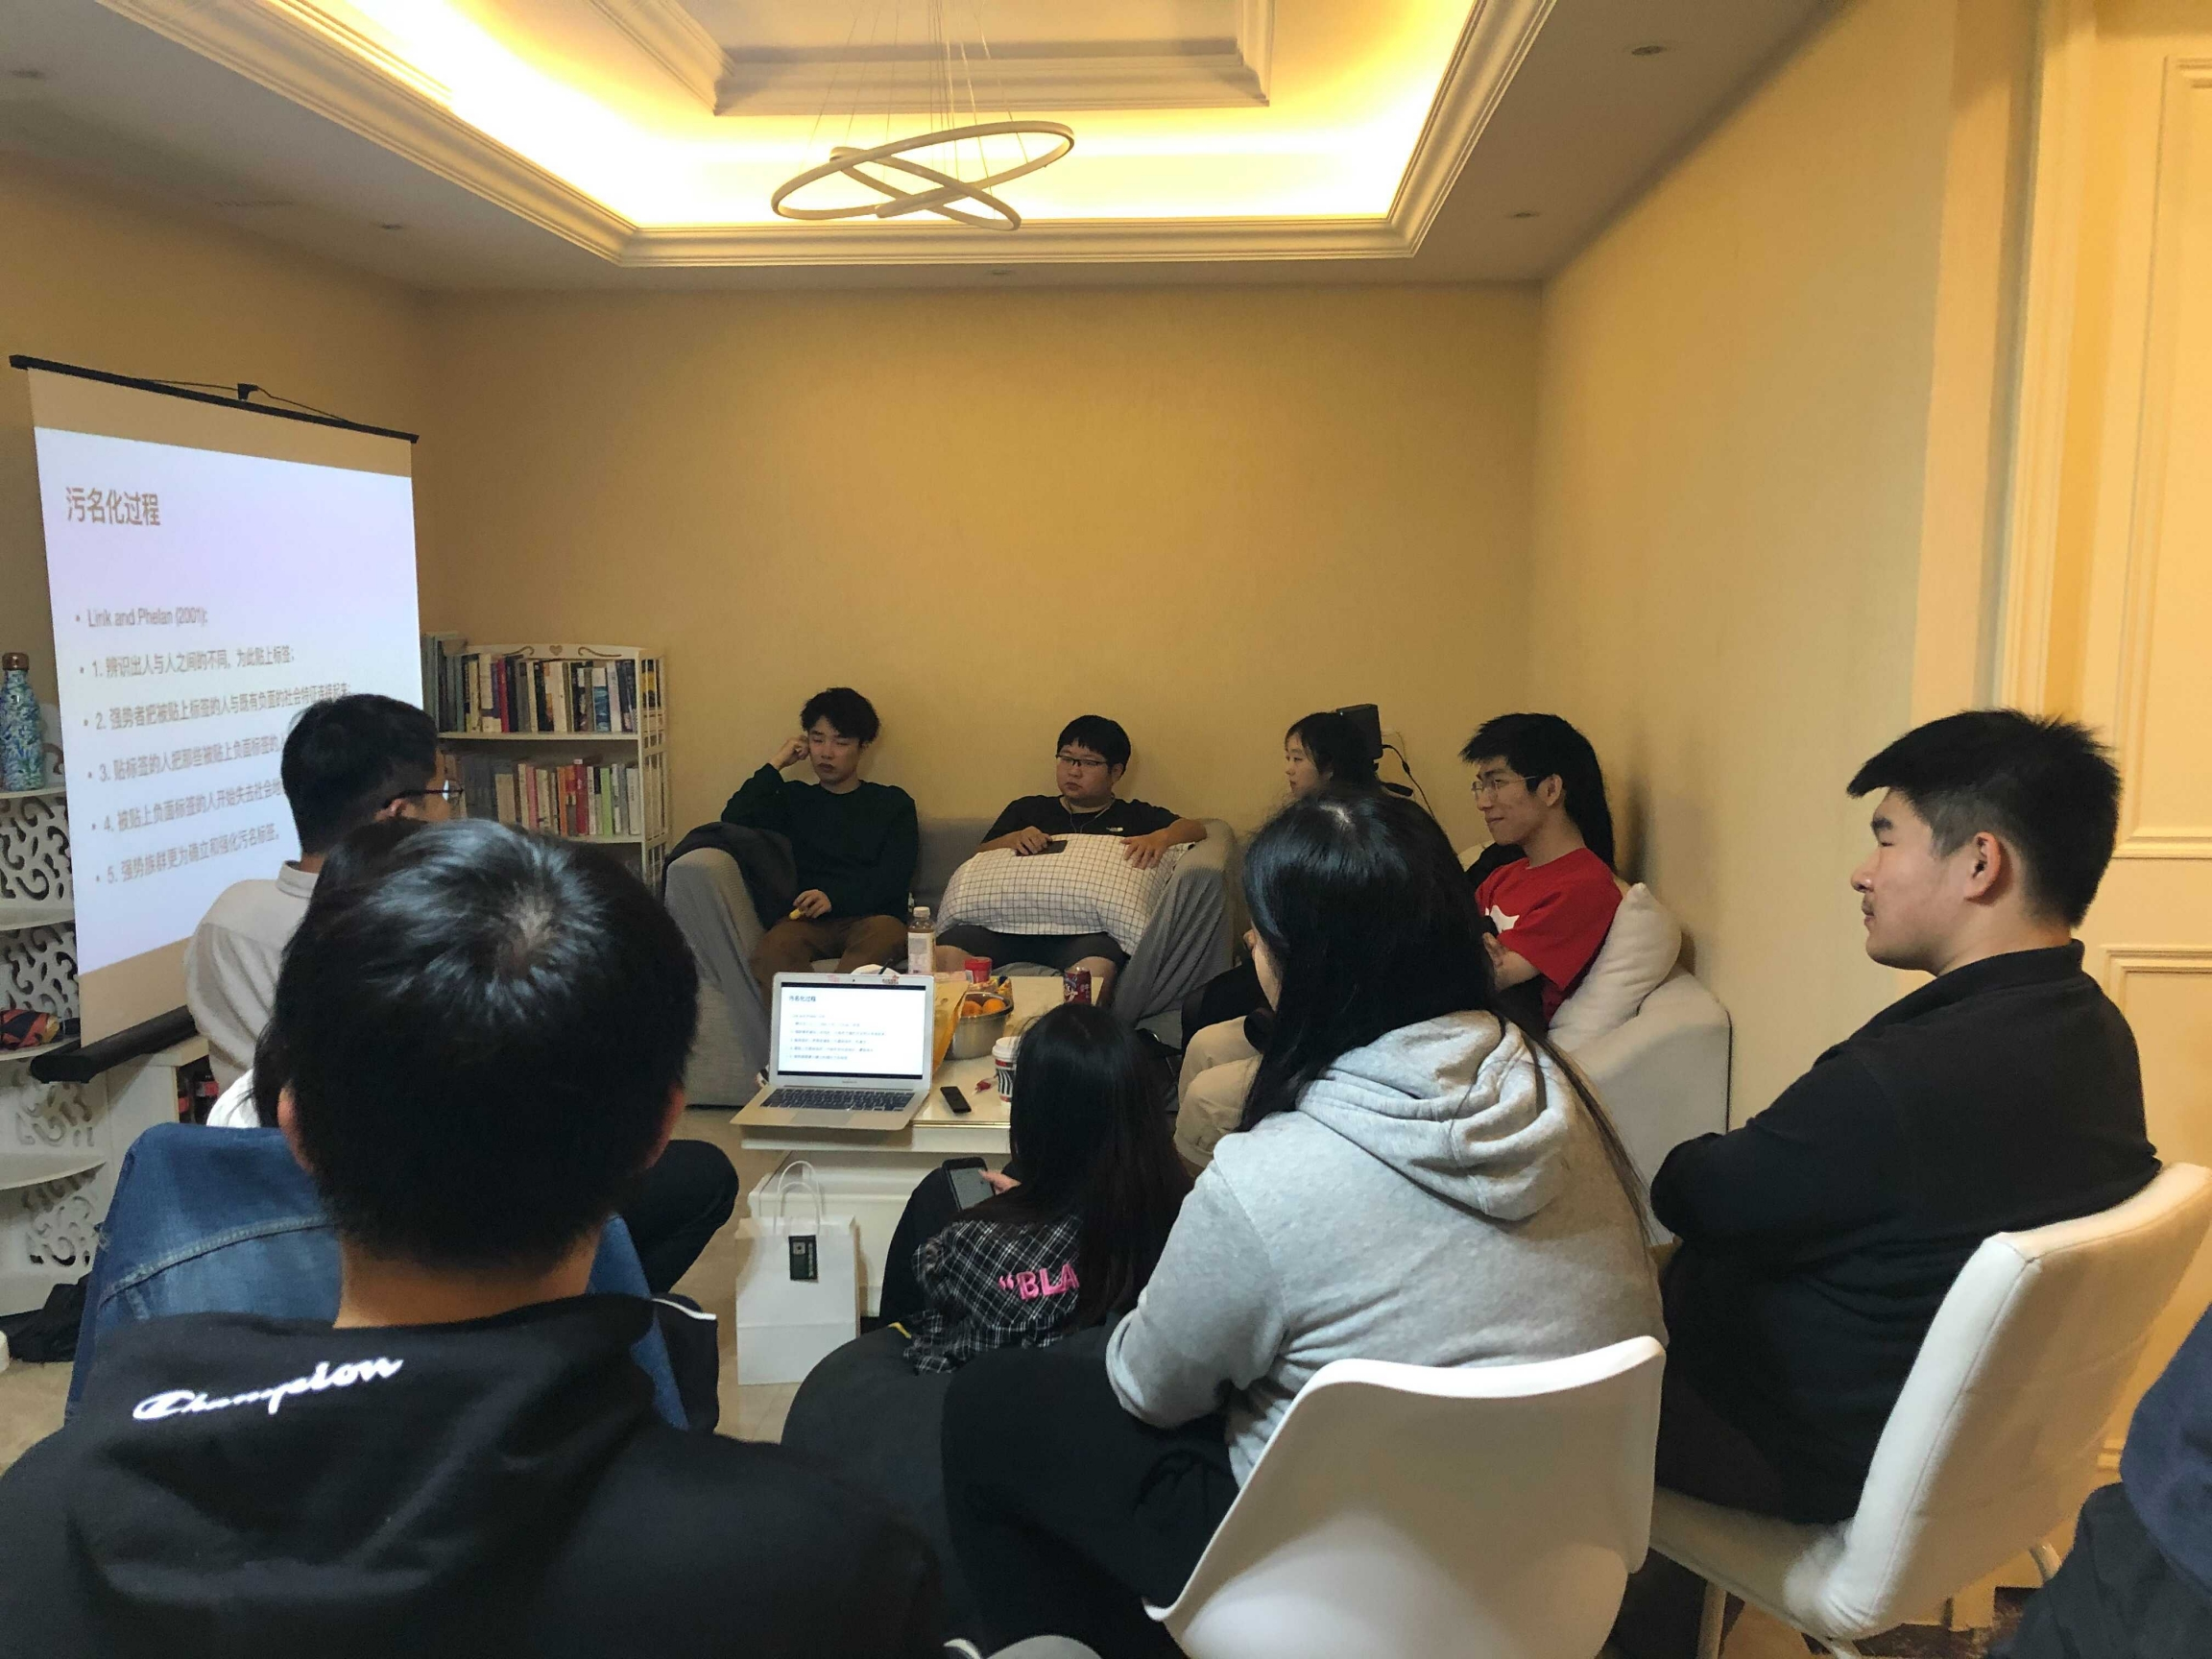 Students study together at 706 Life Lab, a co-living community in Hangzhou, China, that is attracting Chinese students who seek a community as they study remotely.